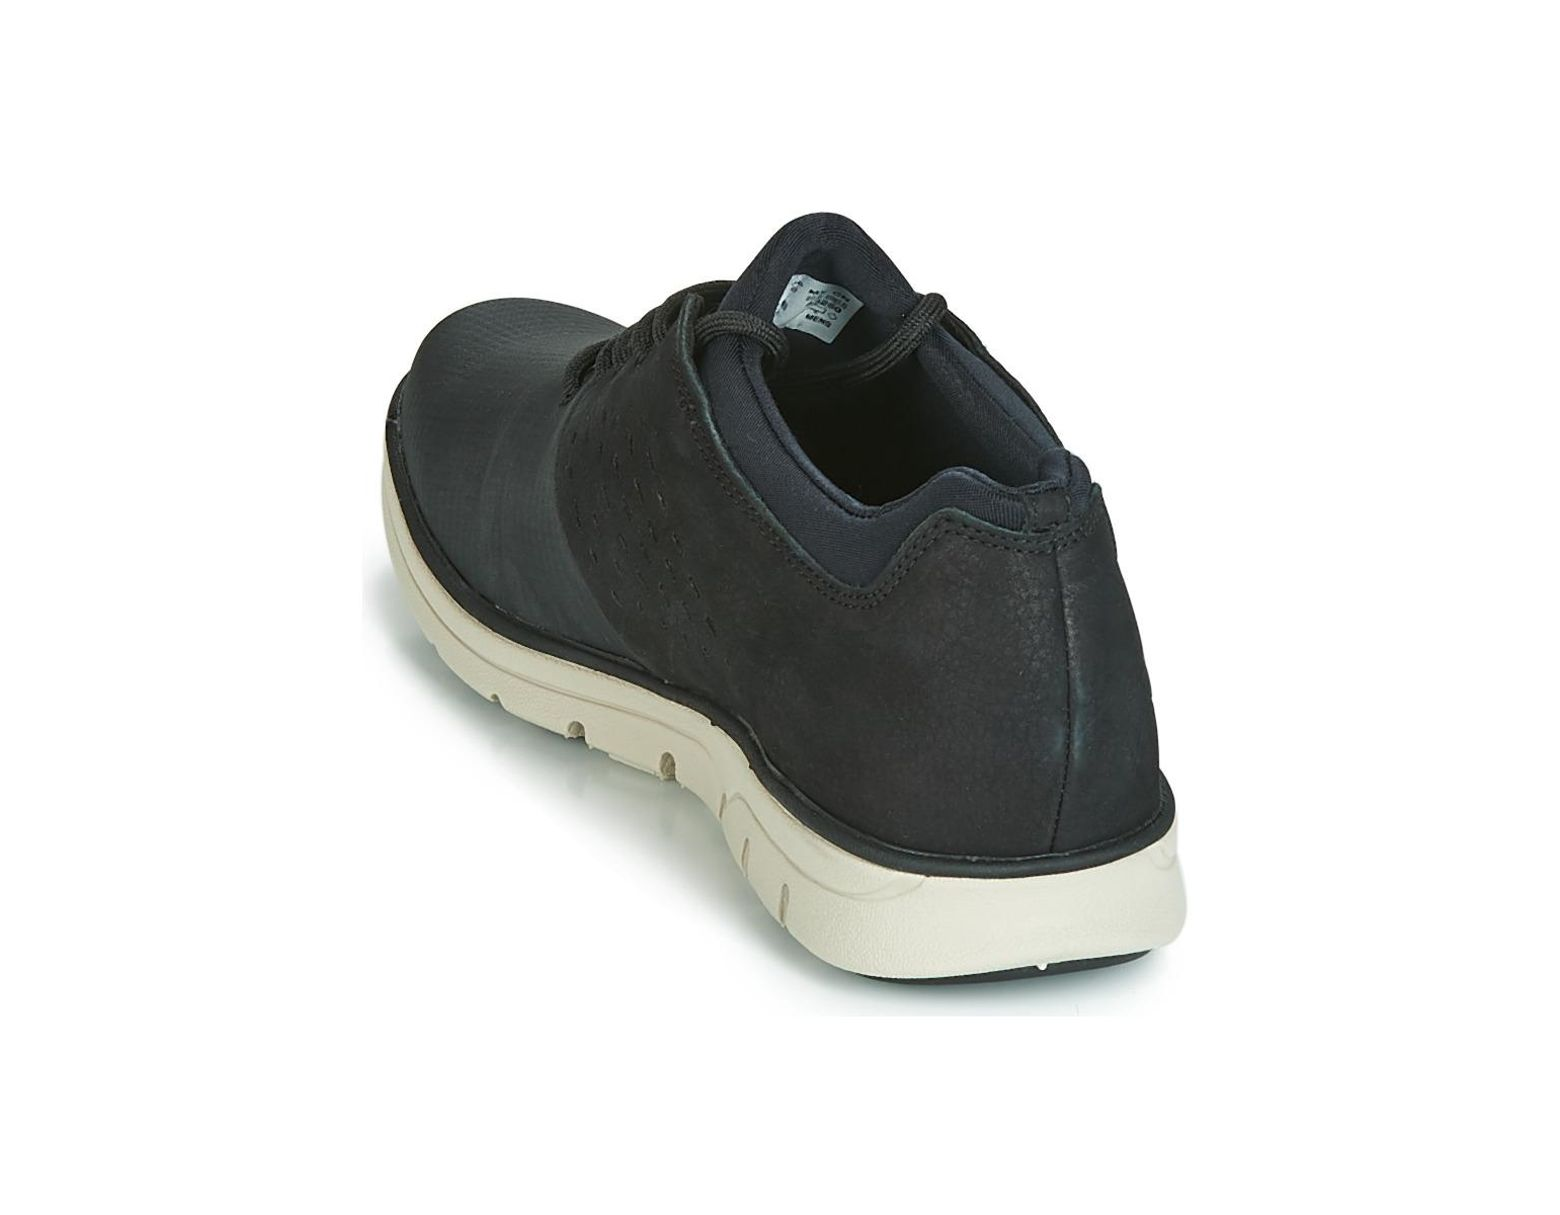 aa7488a868e Timberland Bradstreet F/l Oxford Shoes (trainers) in Black for Men ...